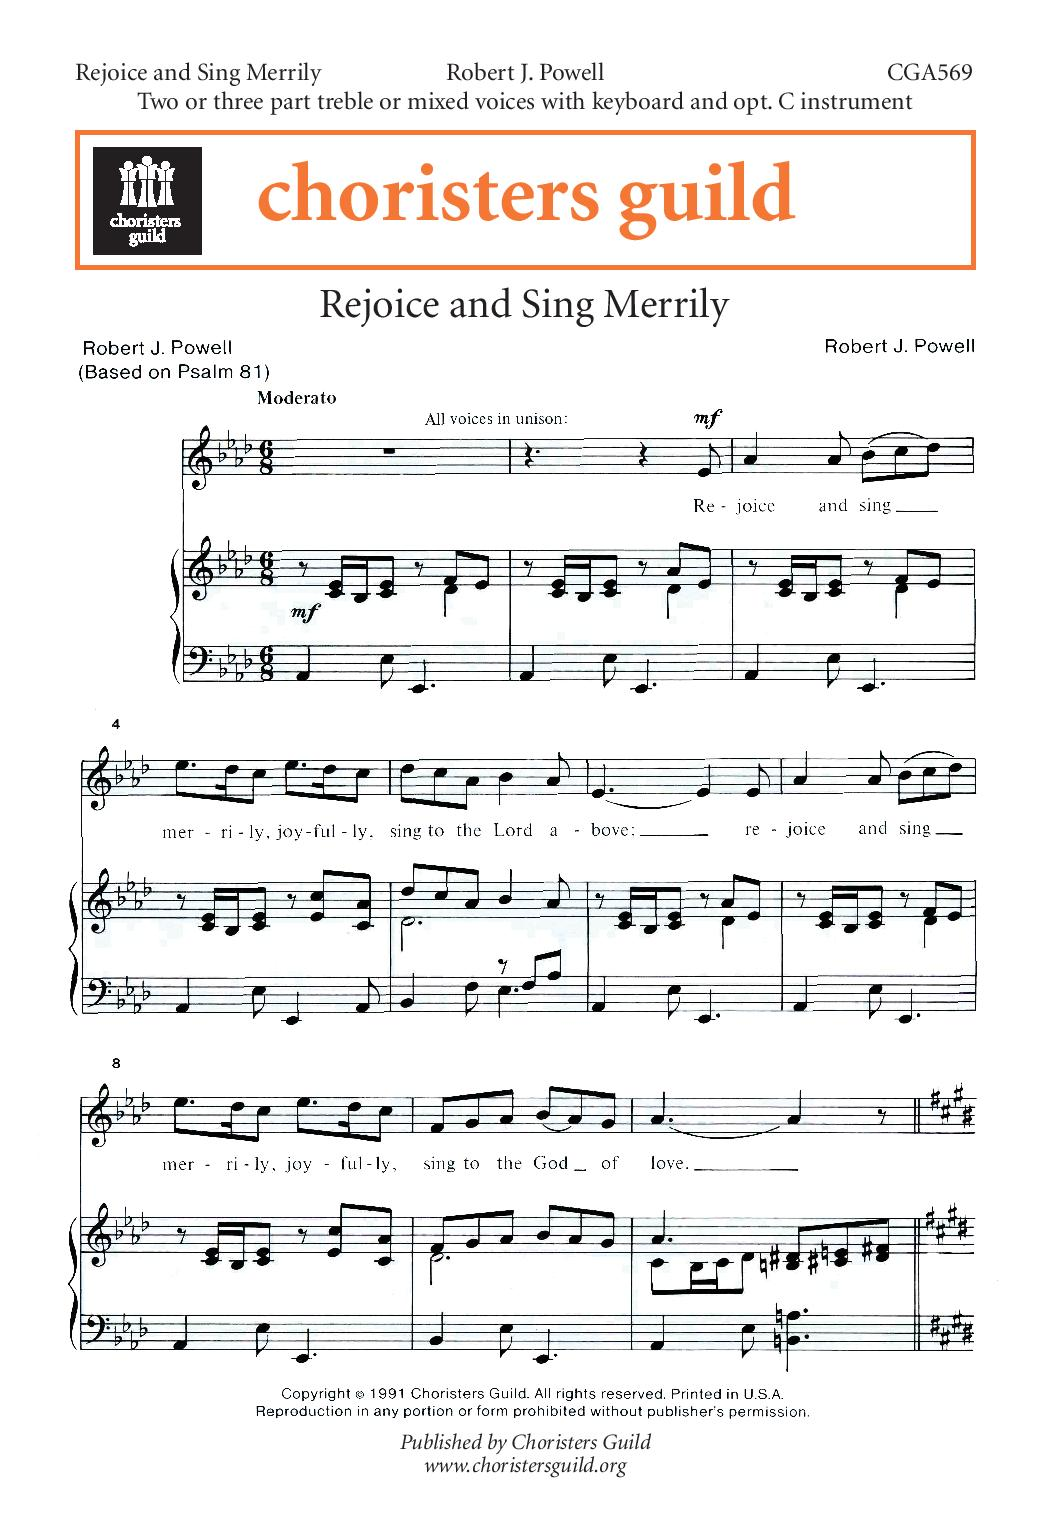 Rejoice and Sing Merrily